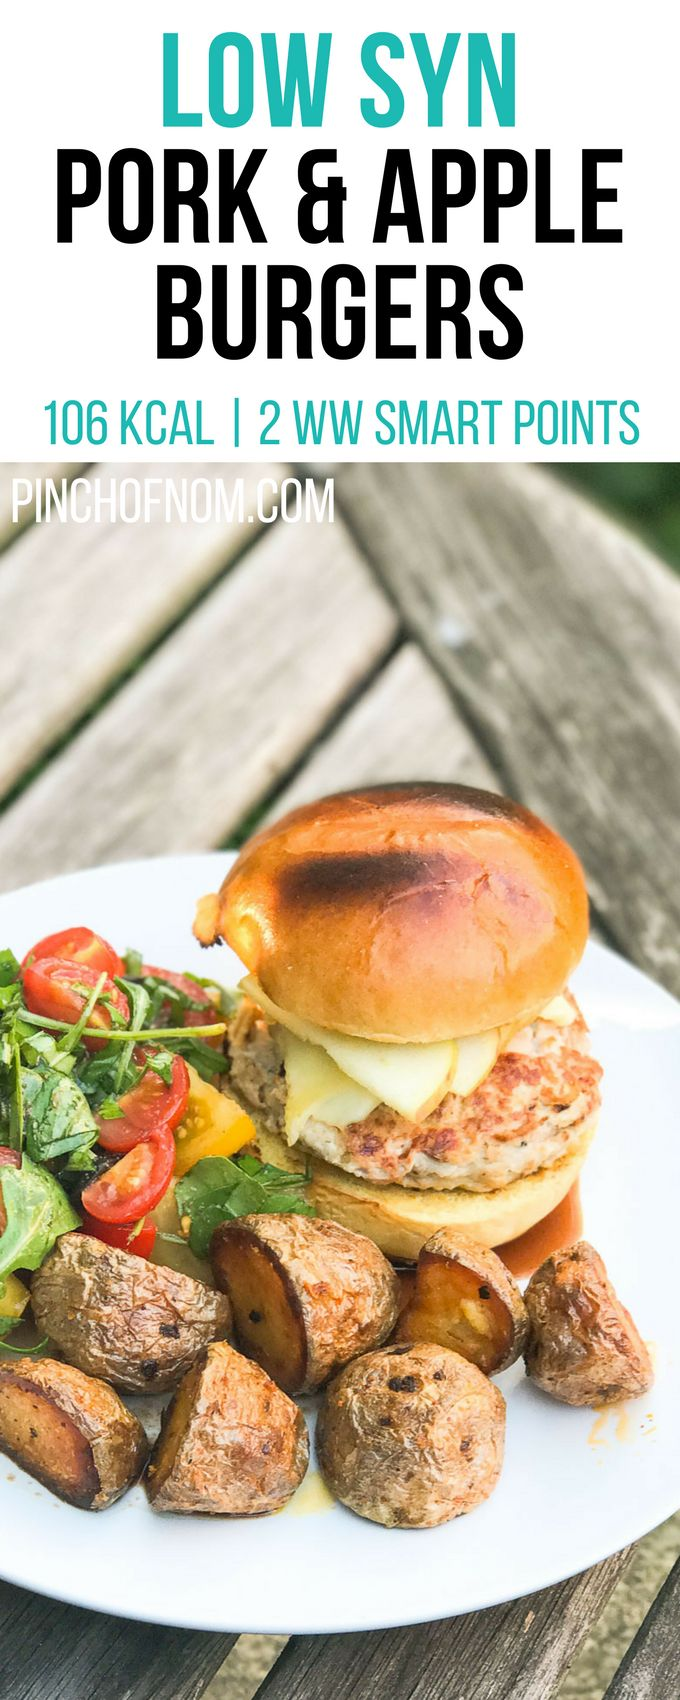 Low Syn Pork and Apple Burgers | Pinch Of Nom Slimming World Recipes     106 kcal | 0.5 Syn | 2 Weight Watchers Smart Points